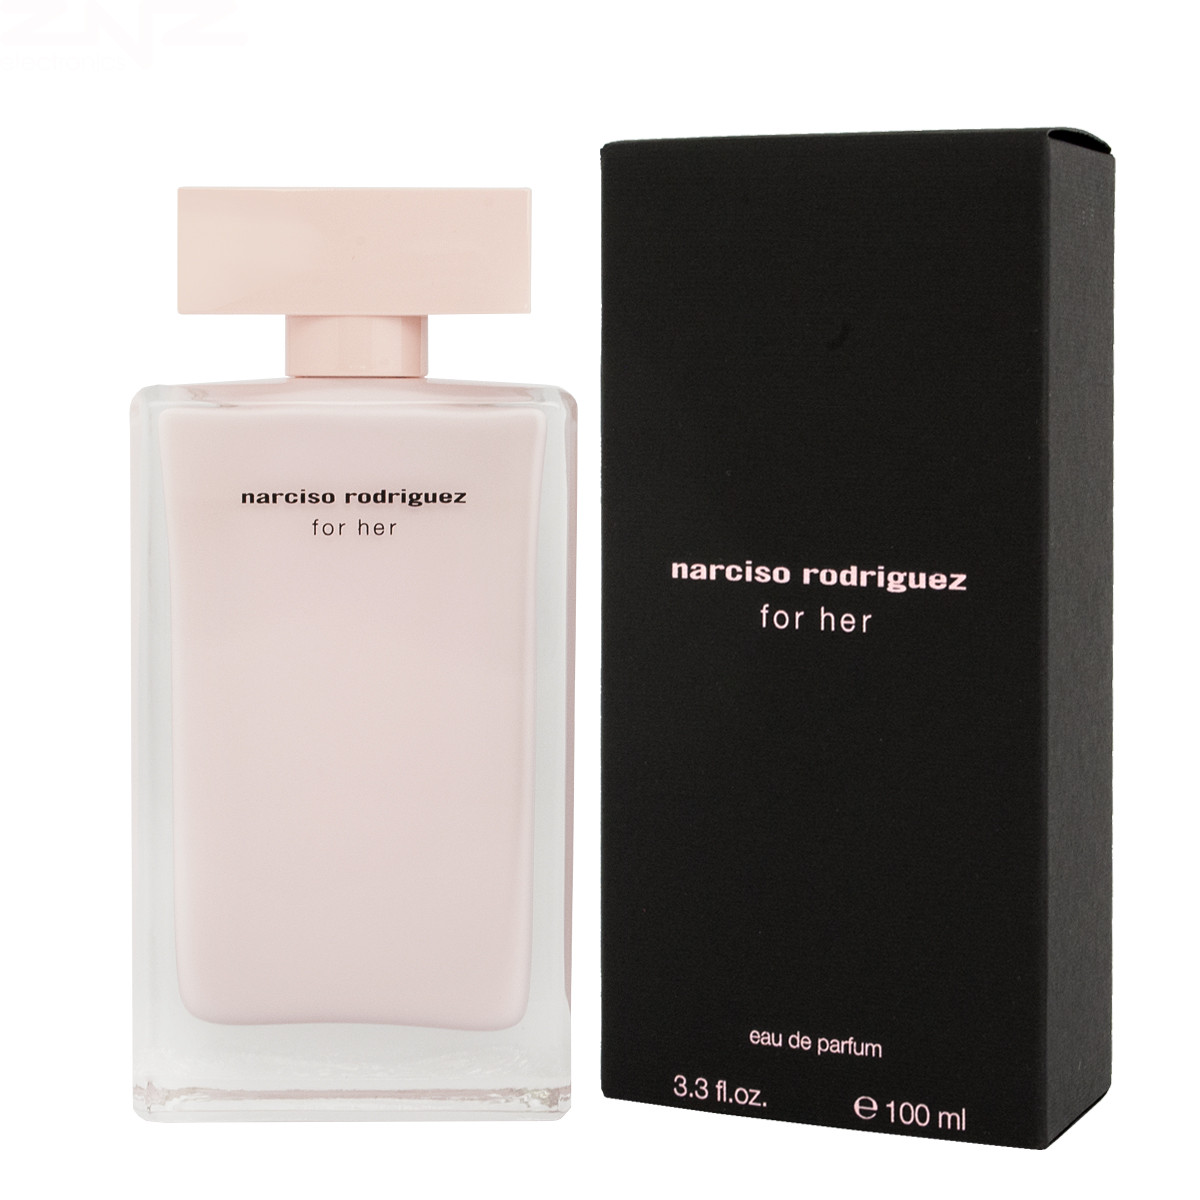 narciso rodriguez for her eau de parfum 100 ml woman for her eau de parfum narciso. Black Bedroom Furniture Sets. Home Design Ideas